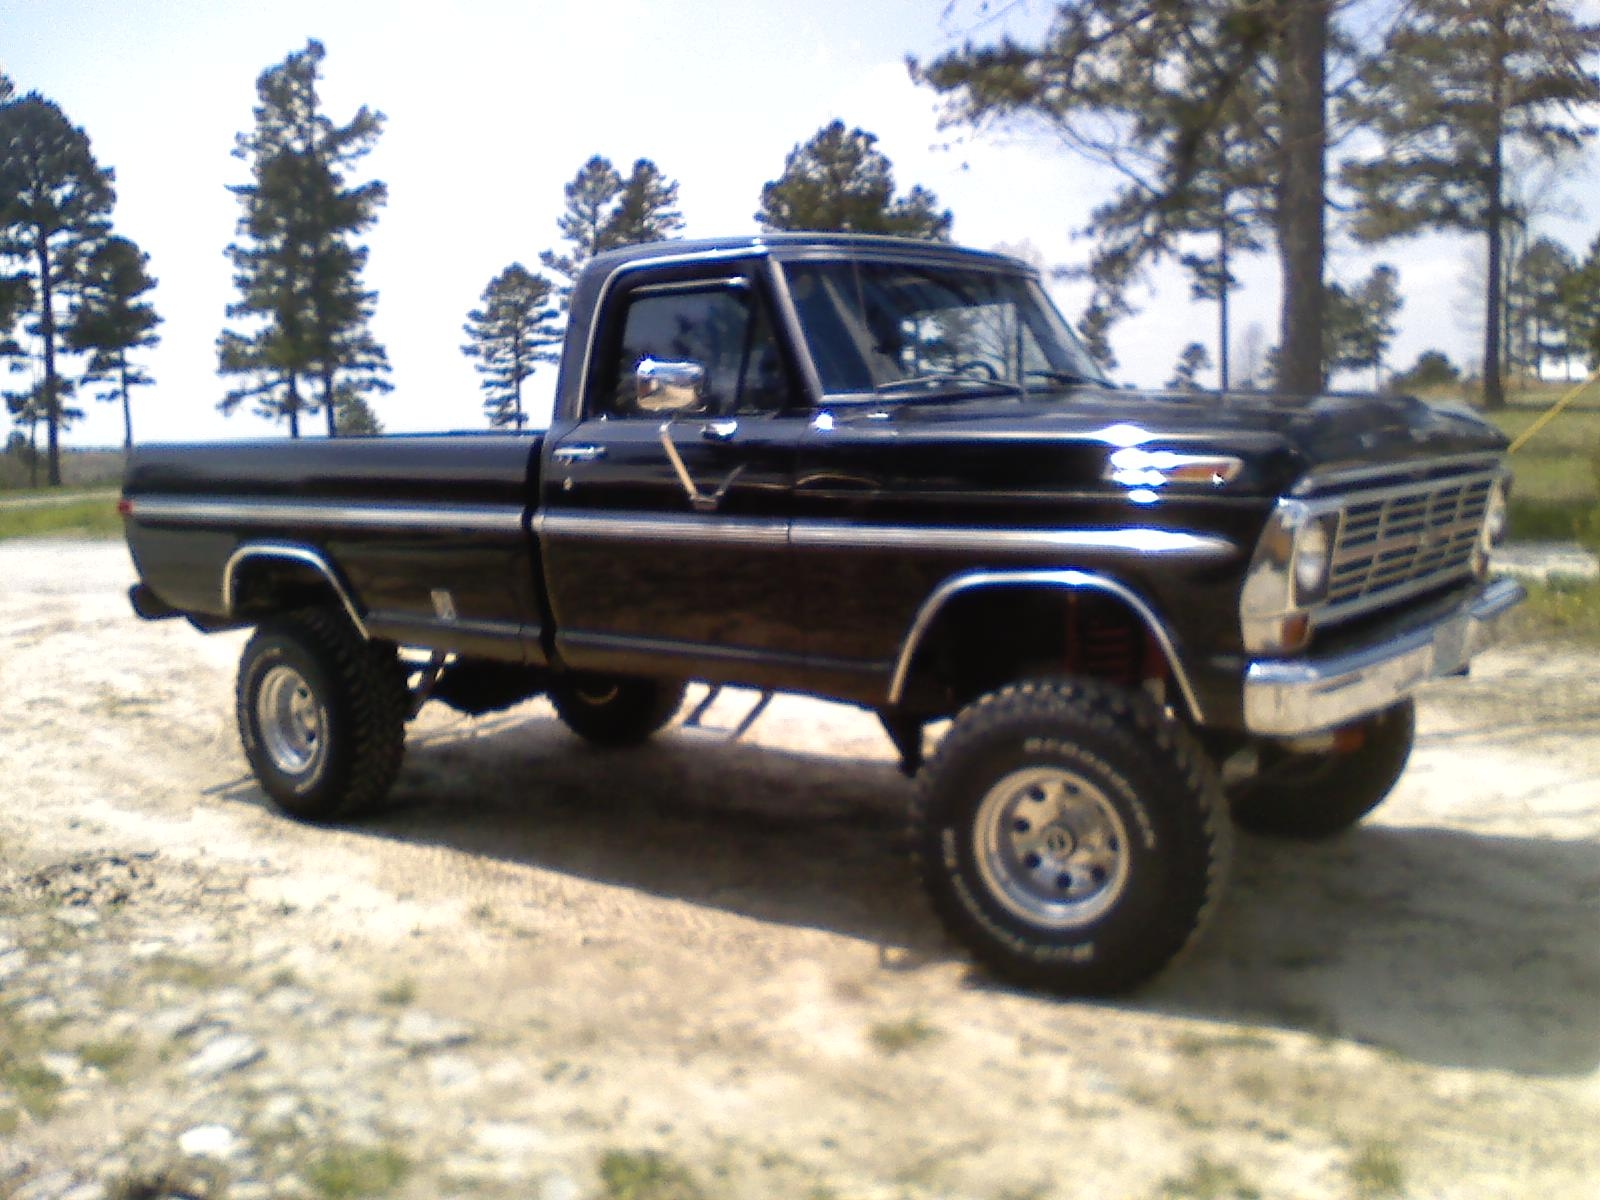 Jb65542 1970 Ford F150 Regular Cab Specs Photos Modification Info F100 Pickup Truck 33534300002 Original